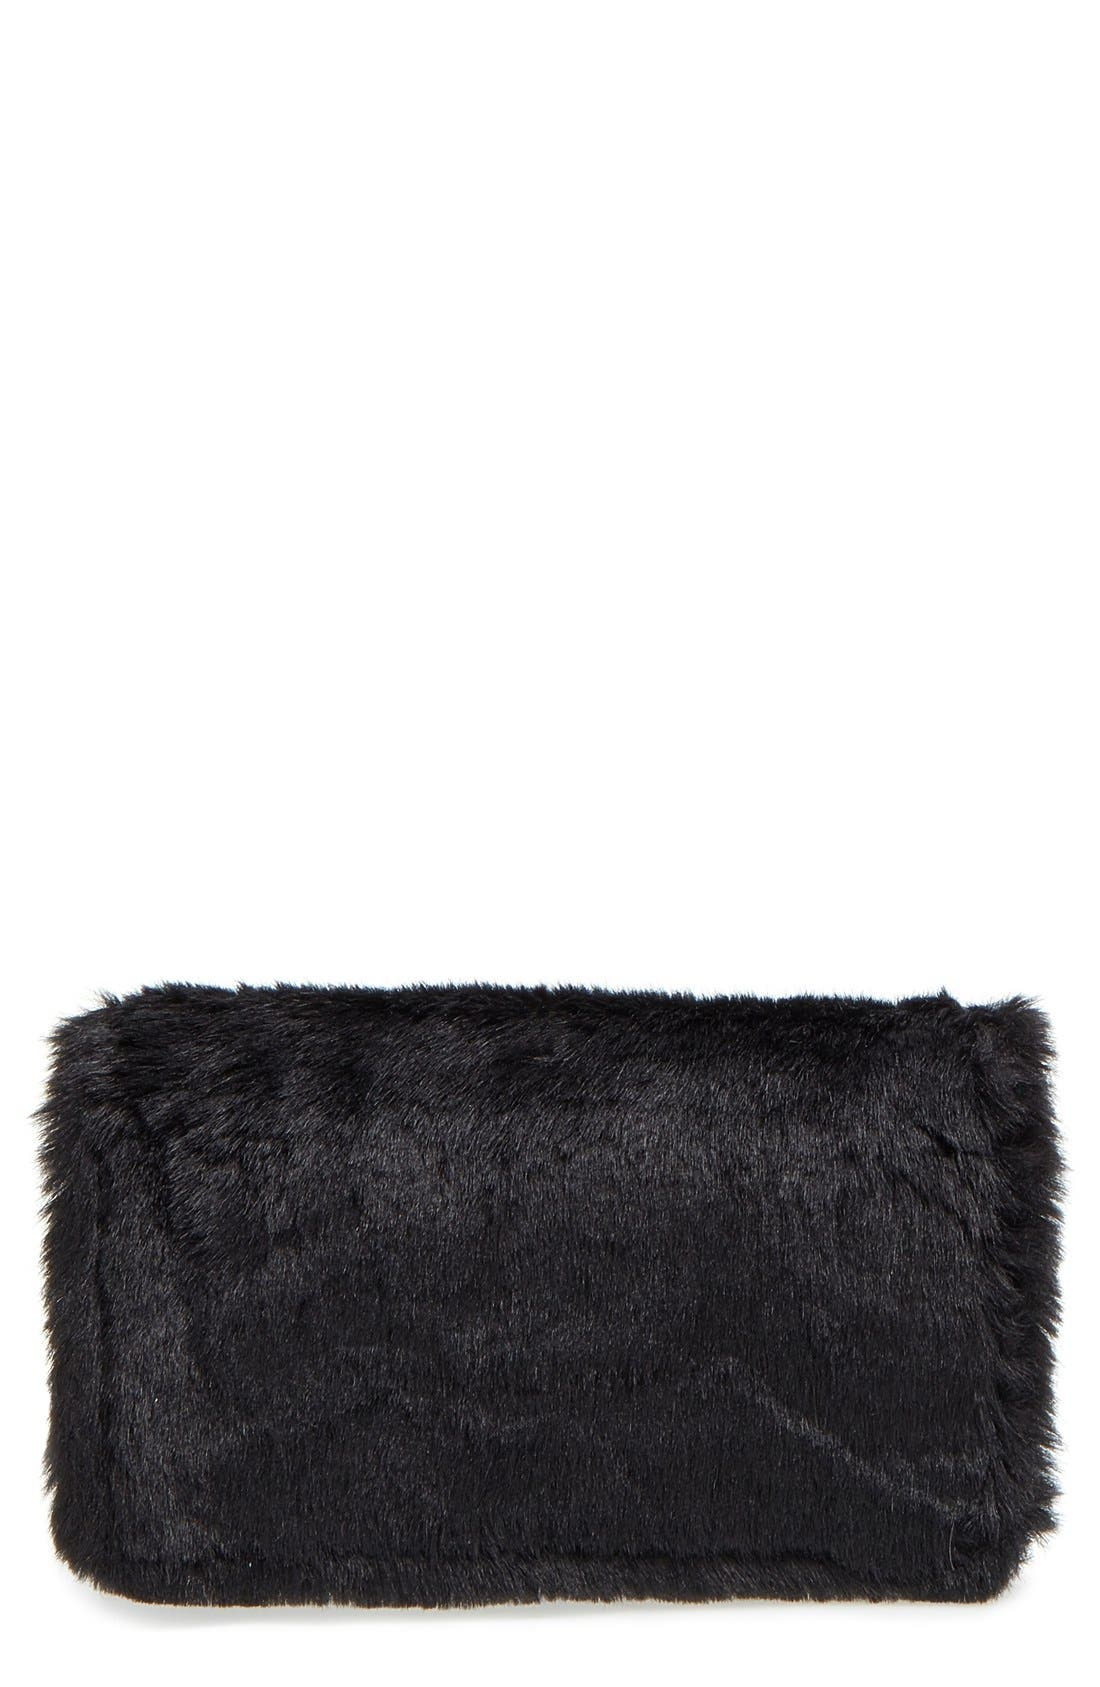 Alternate Image 1 Selected - OMG Faux Fur Flap Crossbody Clutch